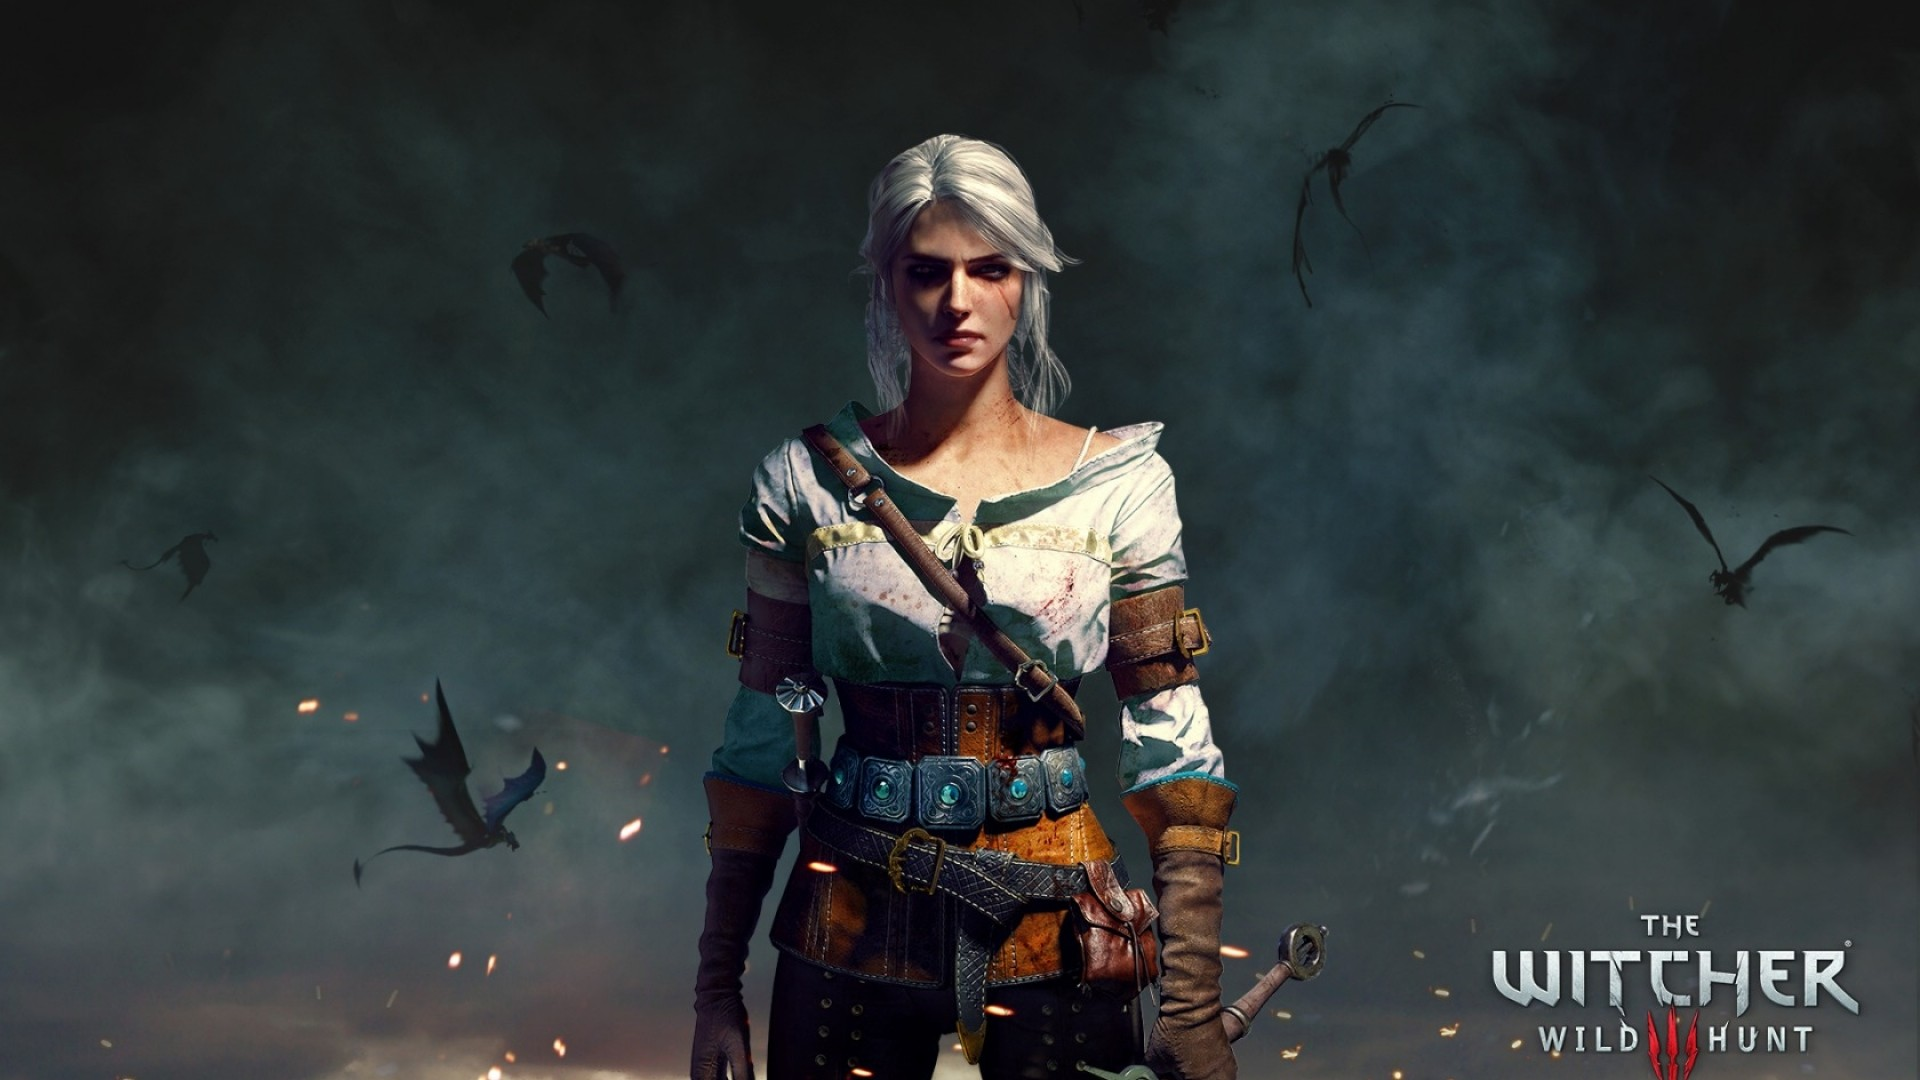 Wallpaper the witcher 3, wild hunt, character